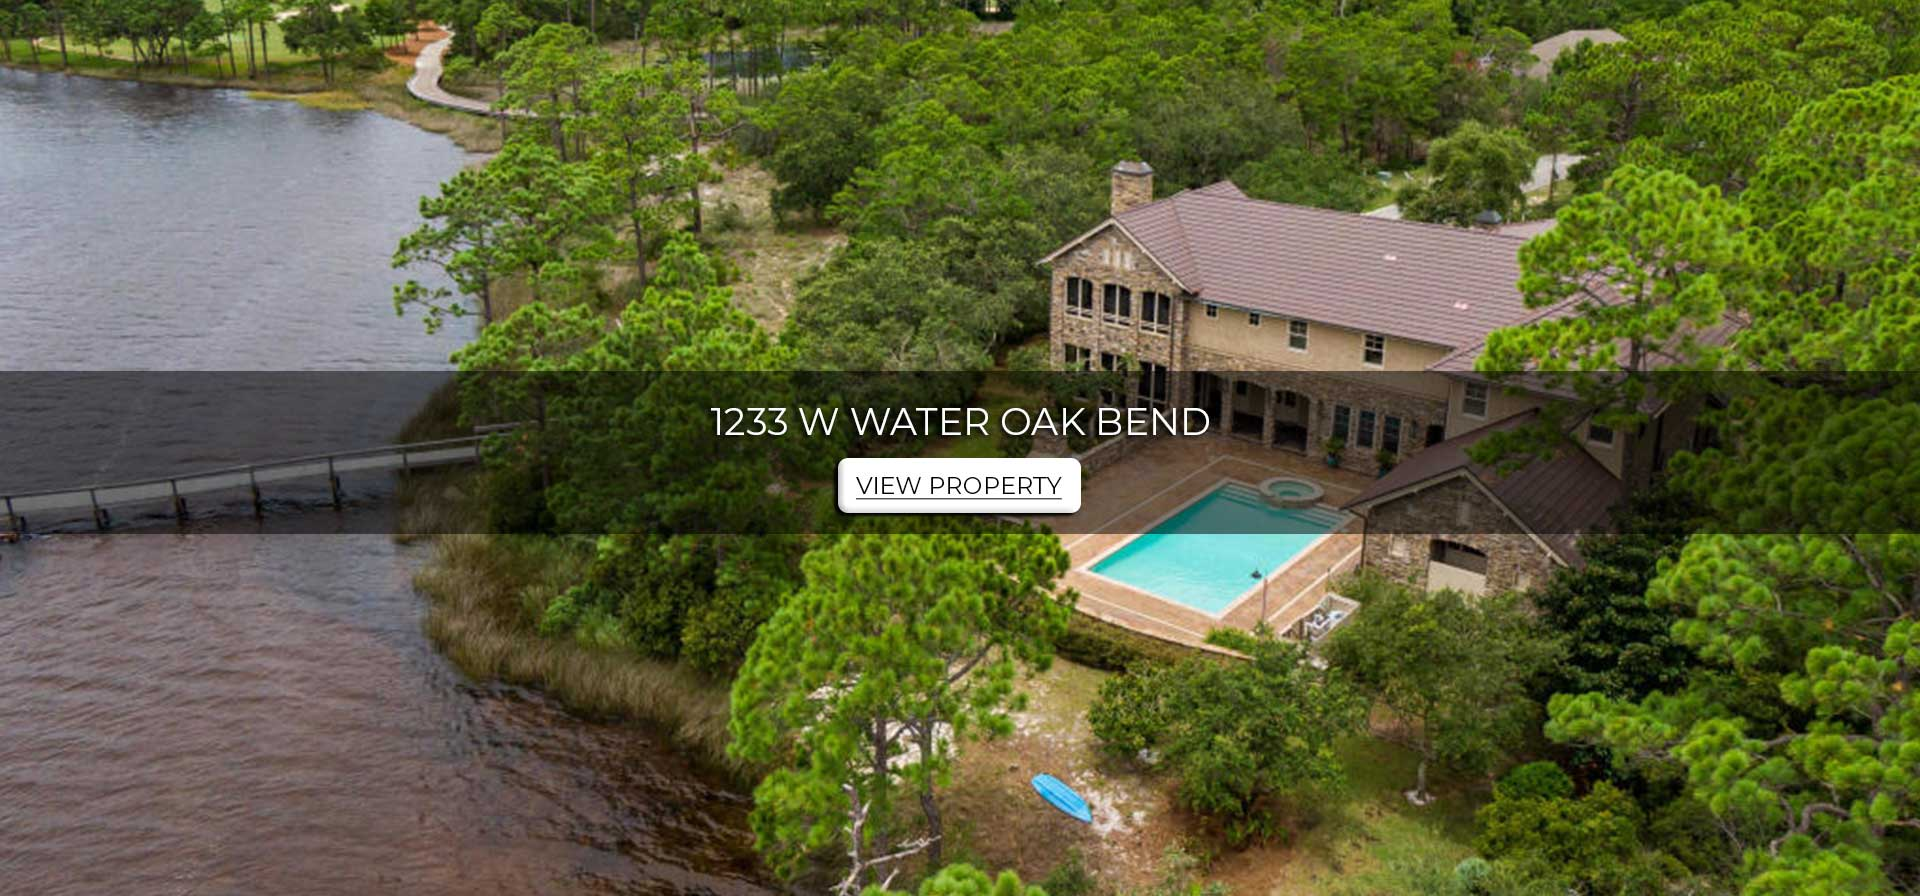 1233 W Water Oak Bend